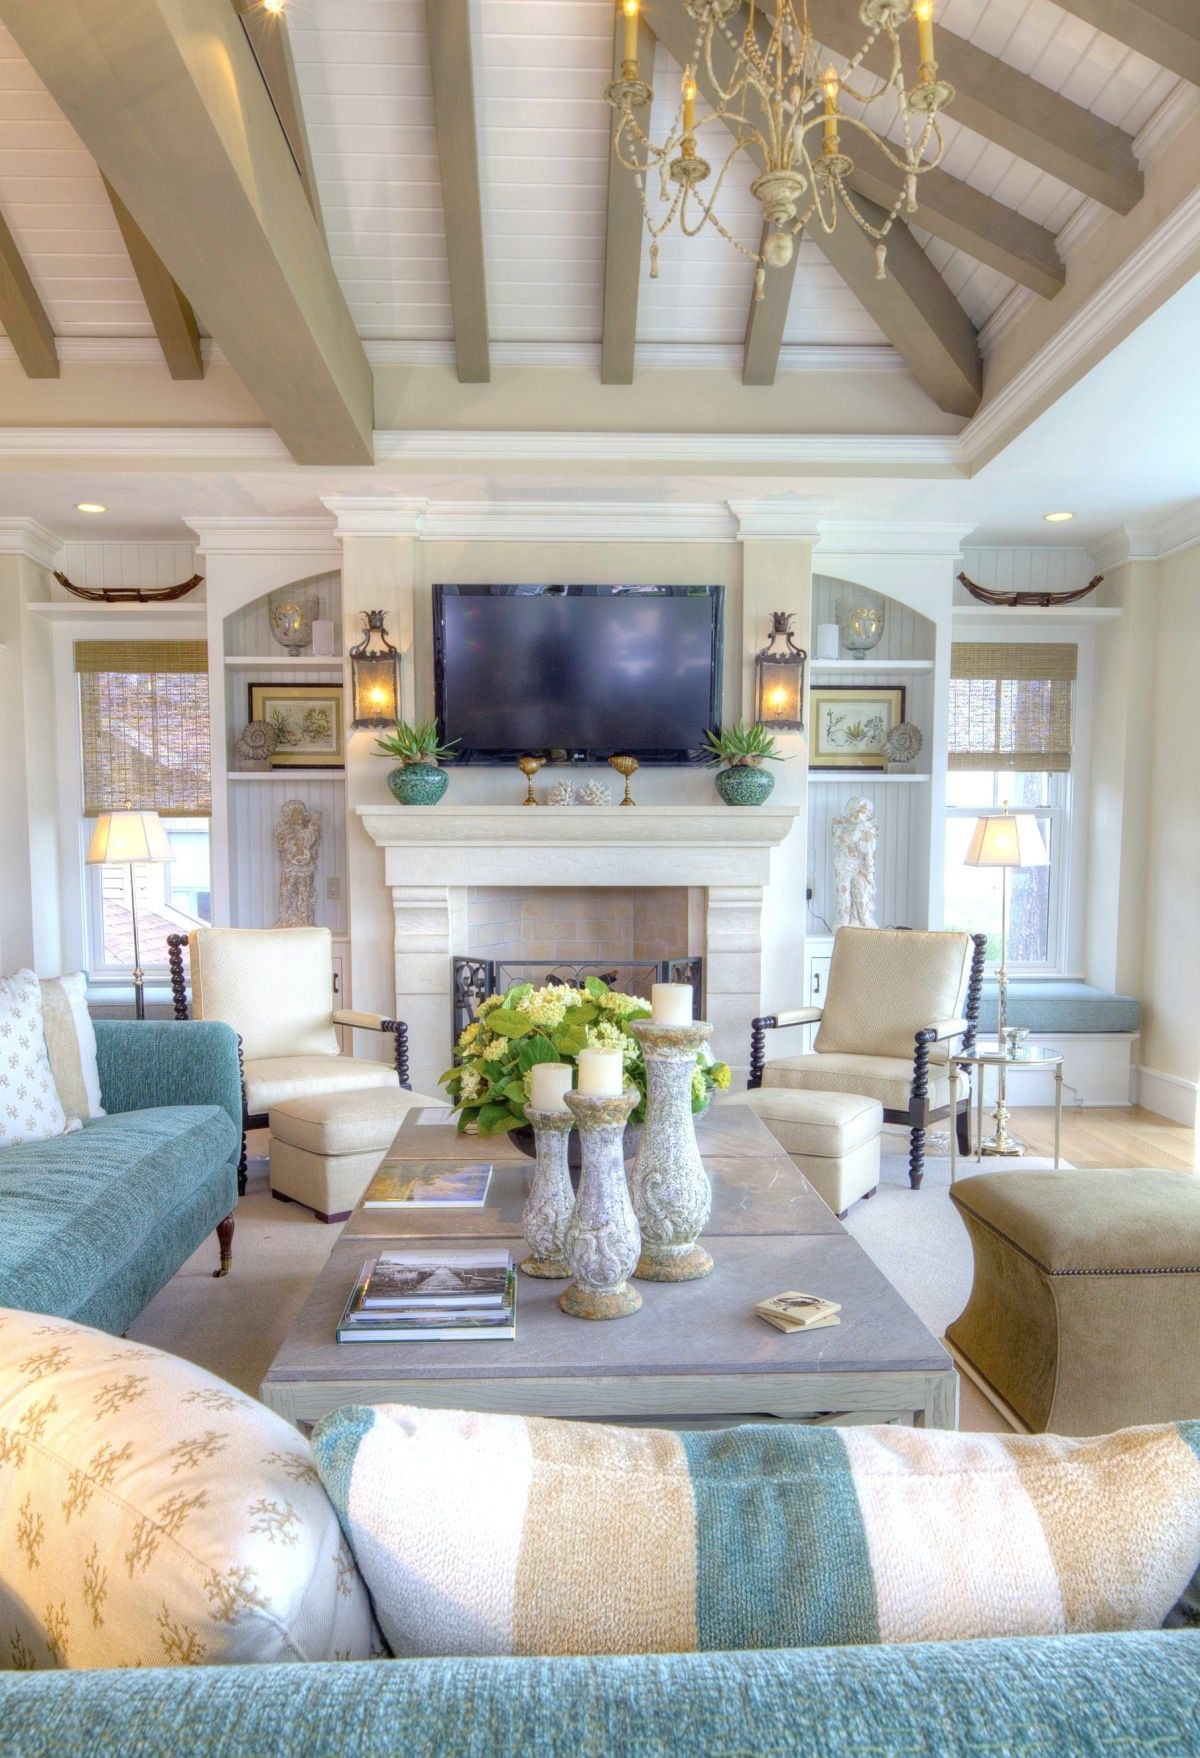 Install Faux Wood Beams | lake house ideas | Pinterest ...